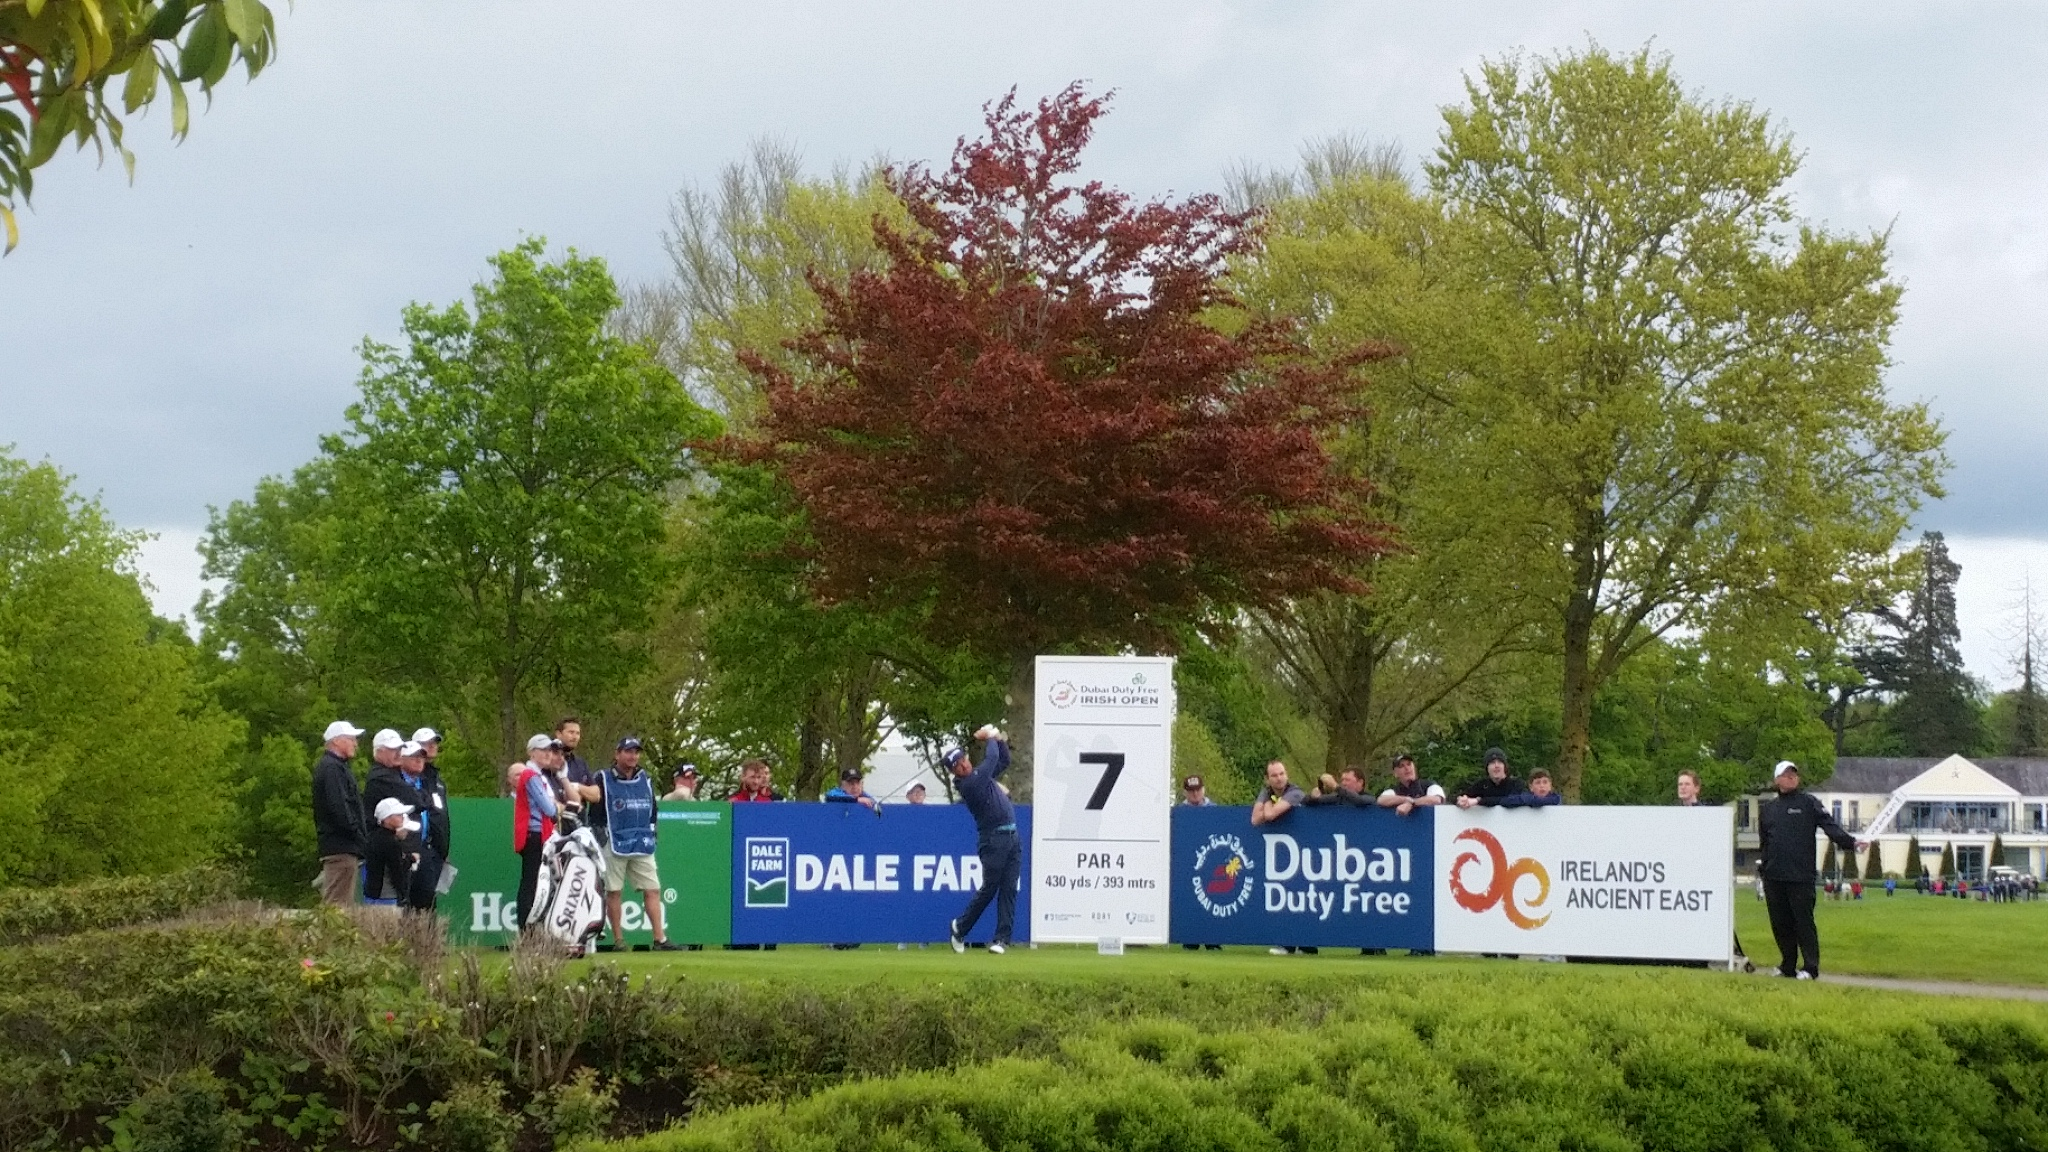 G Mac driving off the 7th hole during the Dubai Duty Free Irish Open Pro-Am.